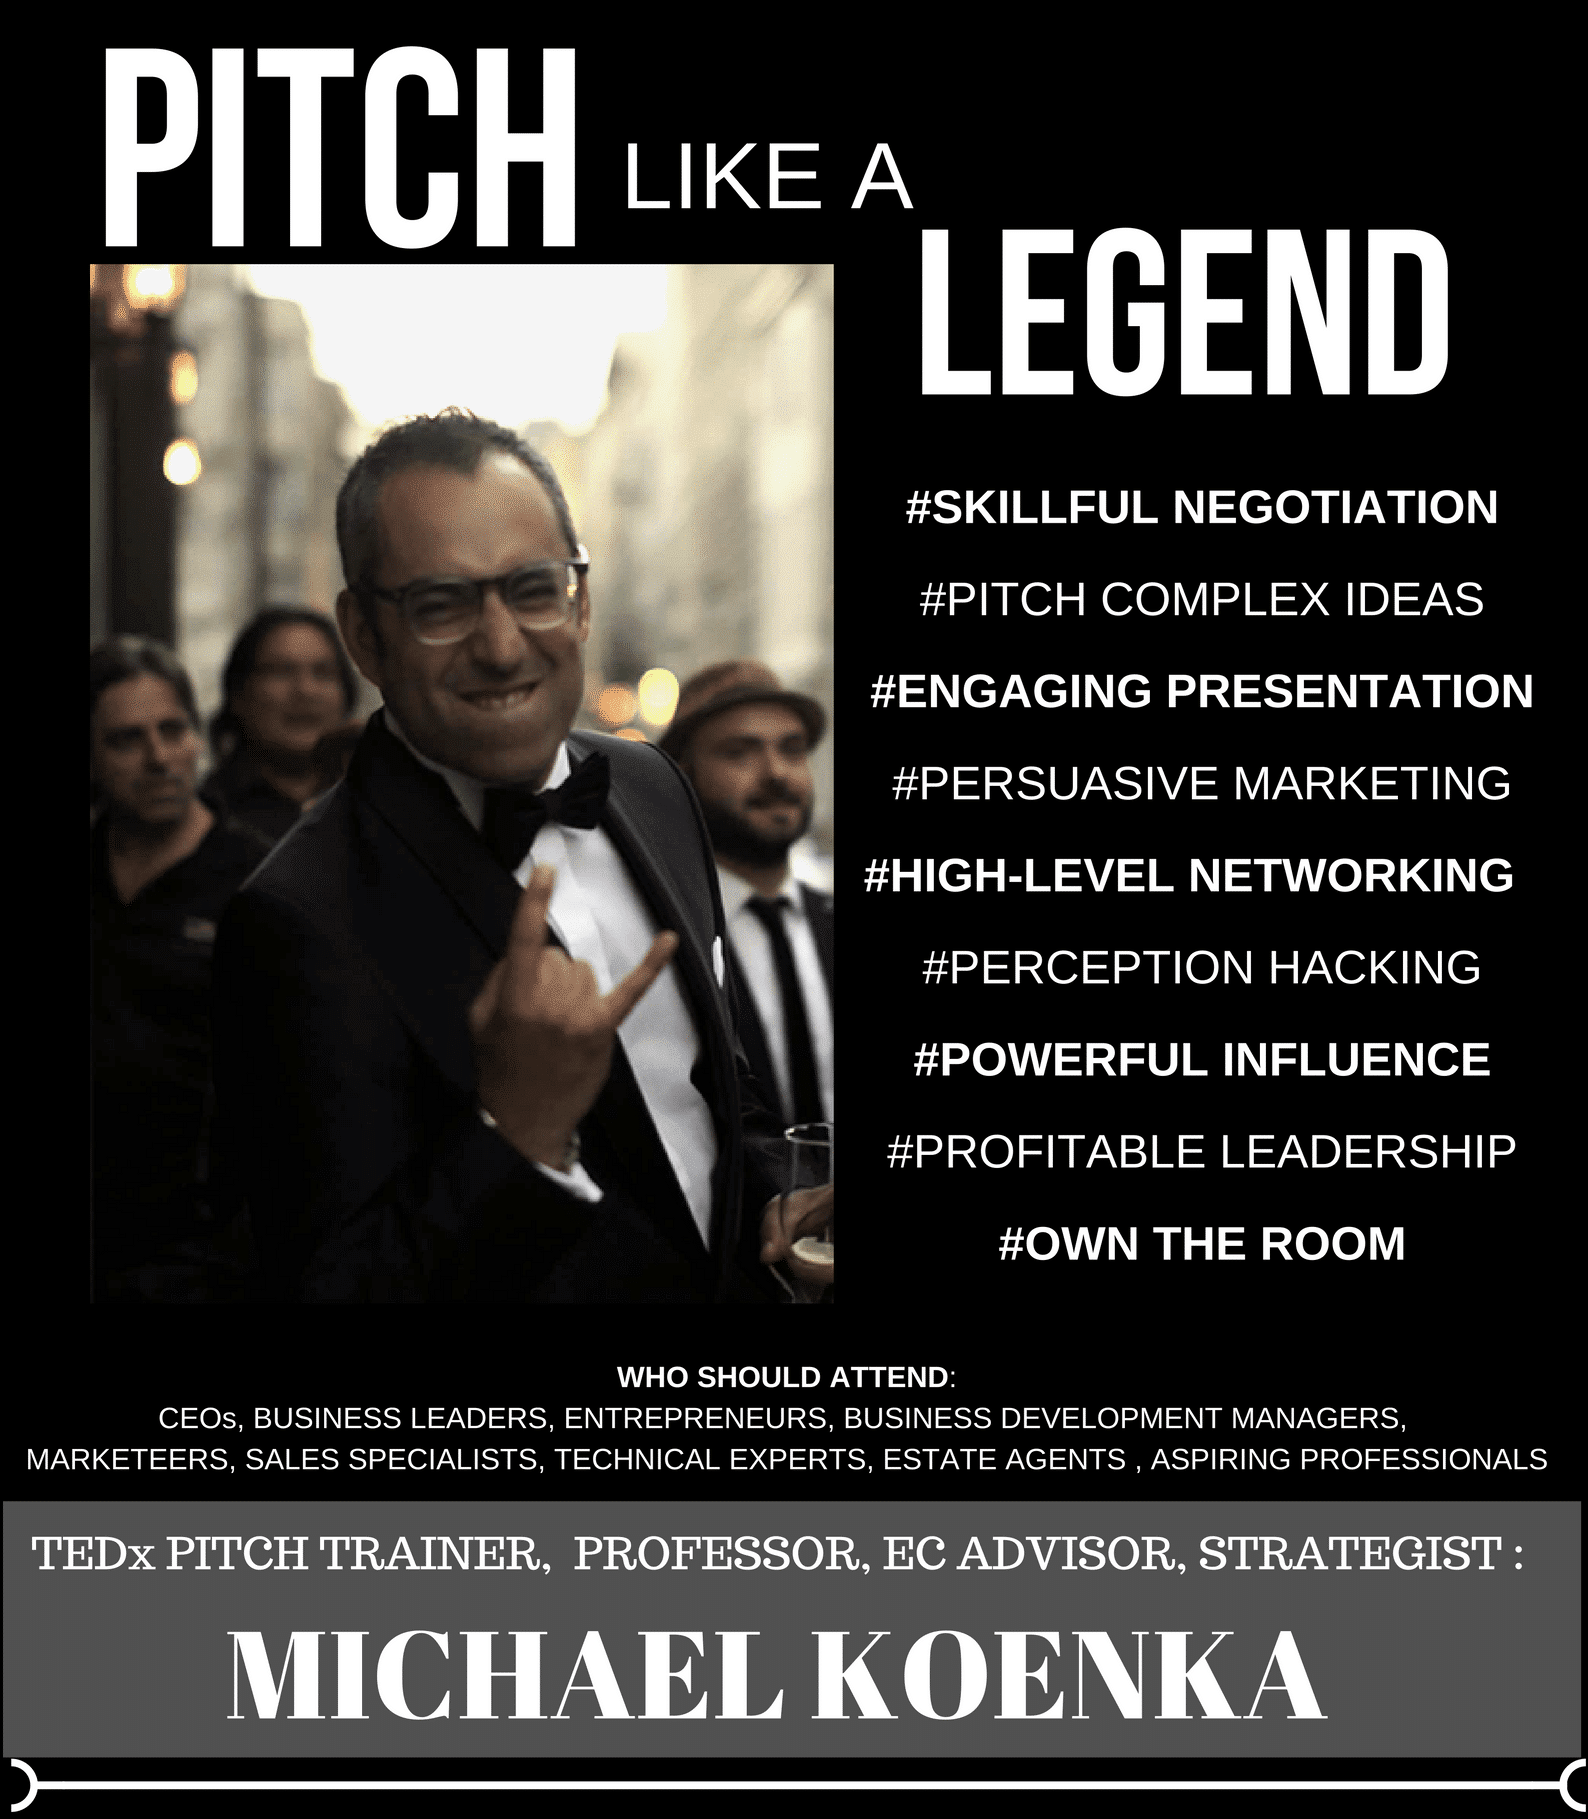 Pitch Like a Legend